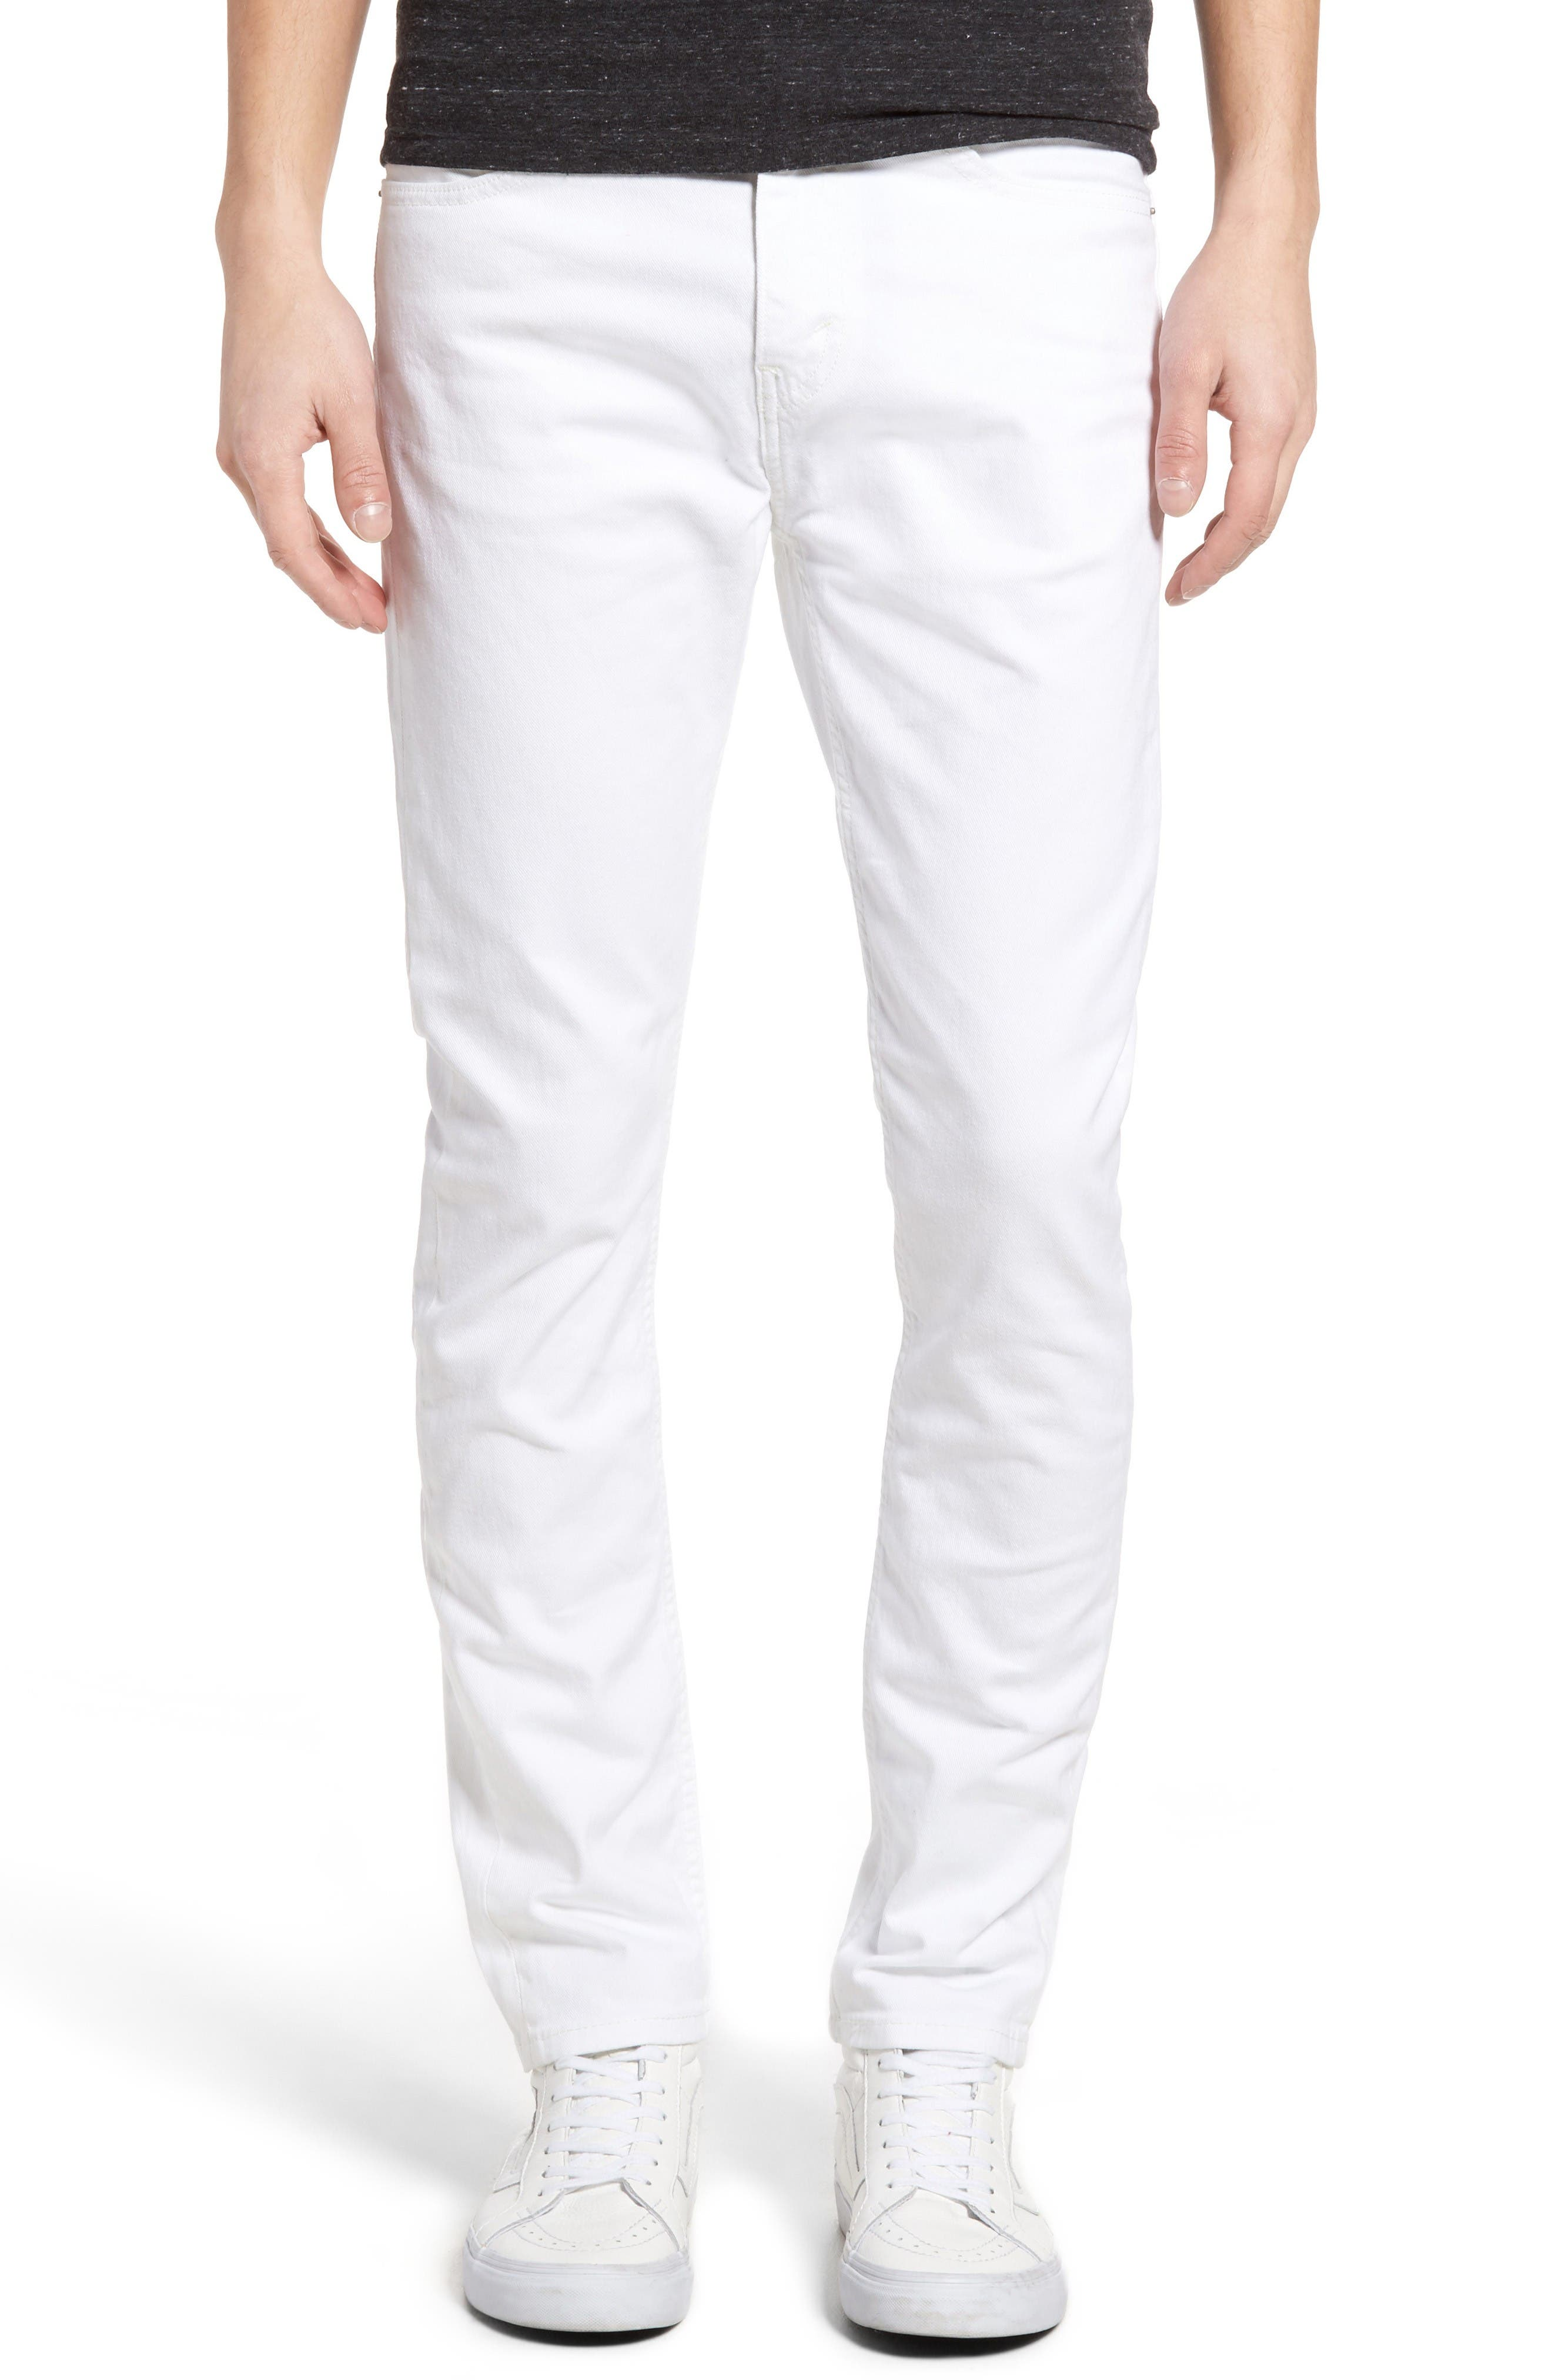 510<sup>®</sup> Skinny Fit Jeans,                             Main thumbnail 1, color,                             White Bull Denim